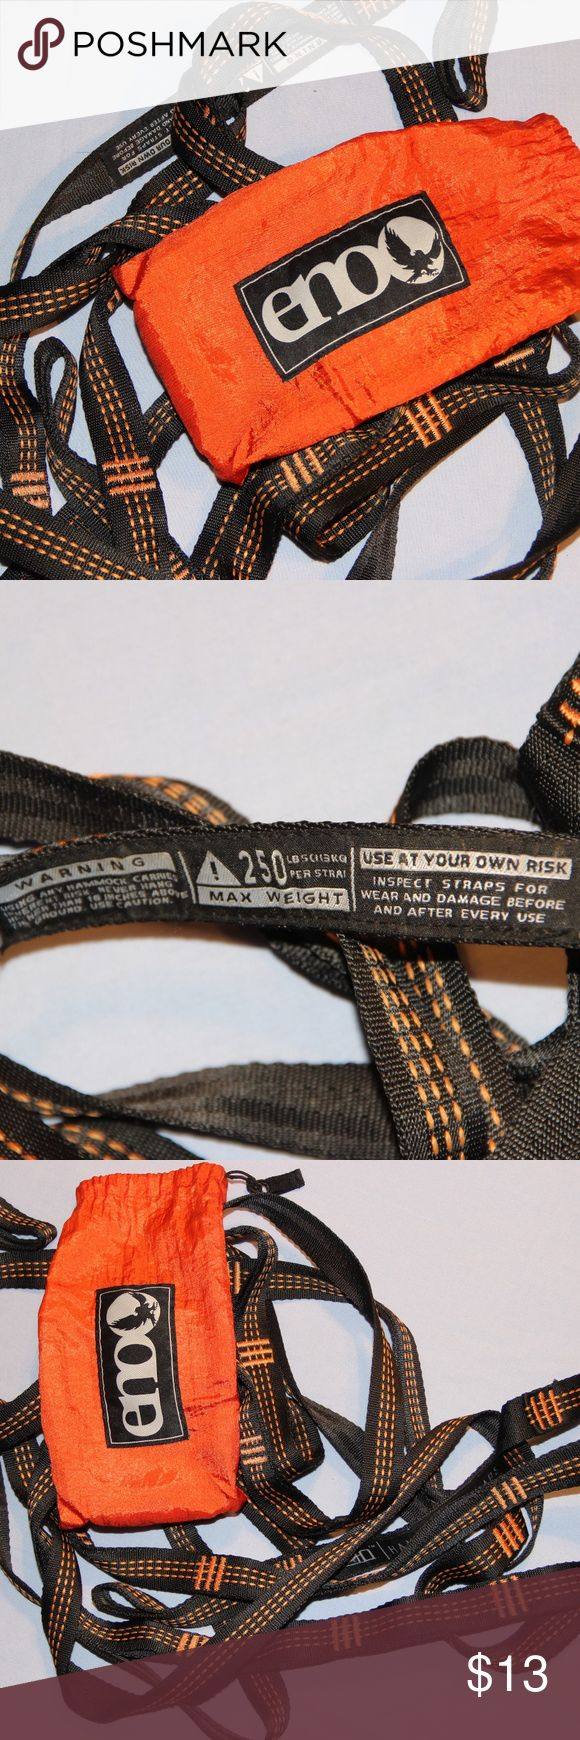 ENO Hammock Straps Eno Brand Hammock Straps, like new!!. Orange and black.  So adjustable you can set up almost anywhere!!! At the end of your day, pitching your gear should be as painless as taking off your shoes. The SlapStrap system by Eagles Nest works anywhere and straps to anything. Hanging your ENO hammock just got even easier. It took only minutes before, now in only a few seconds you can be hanging in the sun.  6 points on both straps, make a 25 ft suspension. ENO Accessories